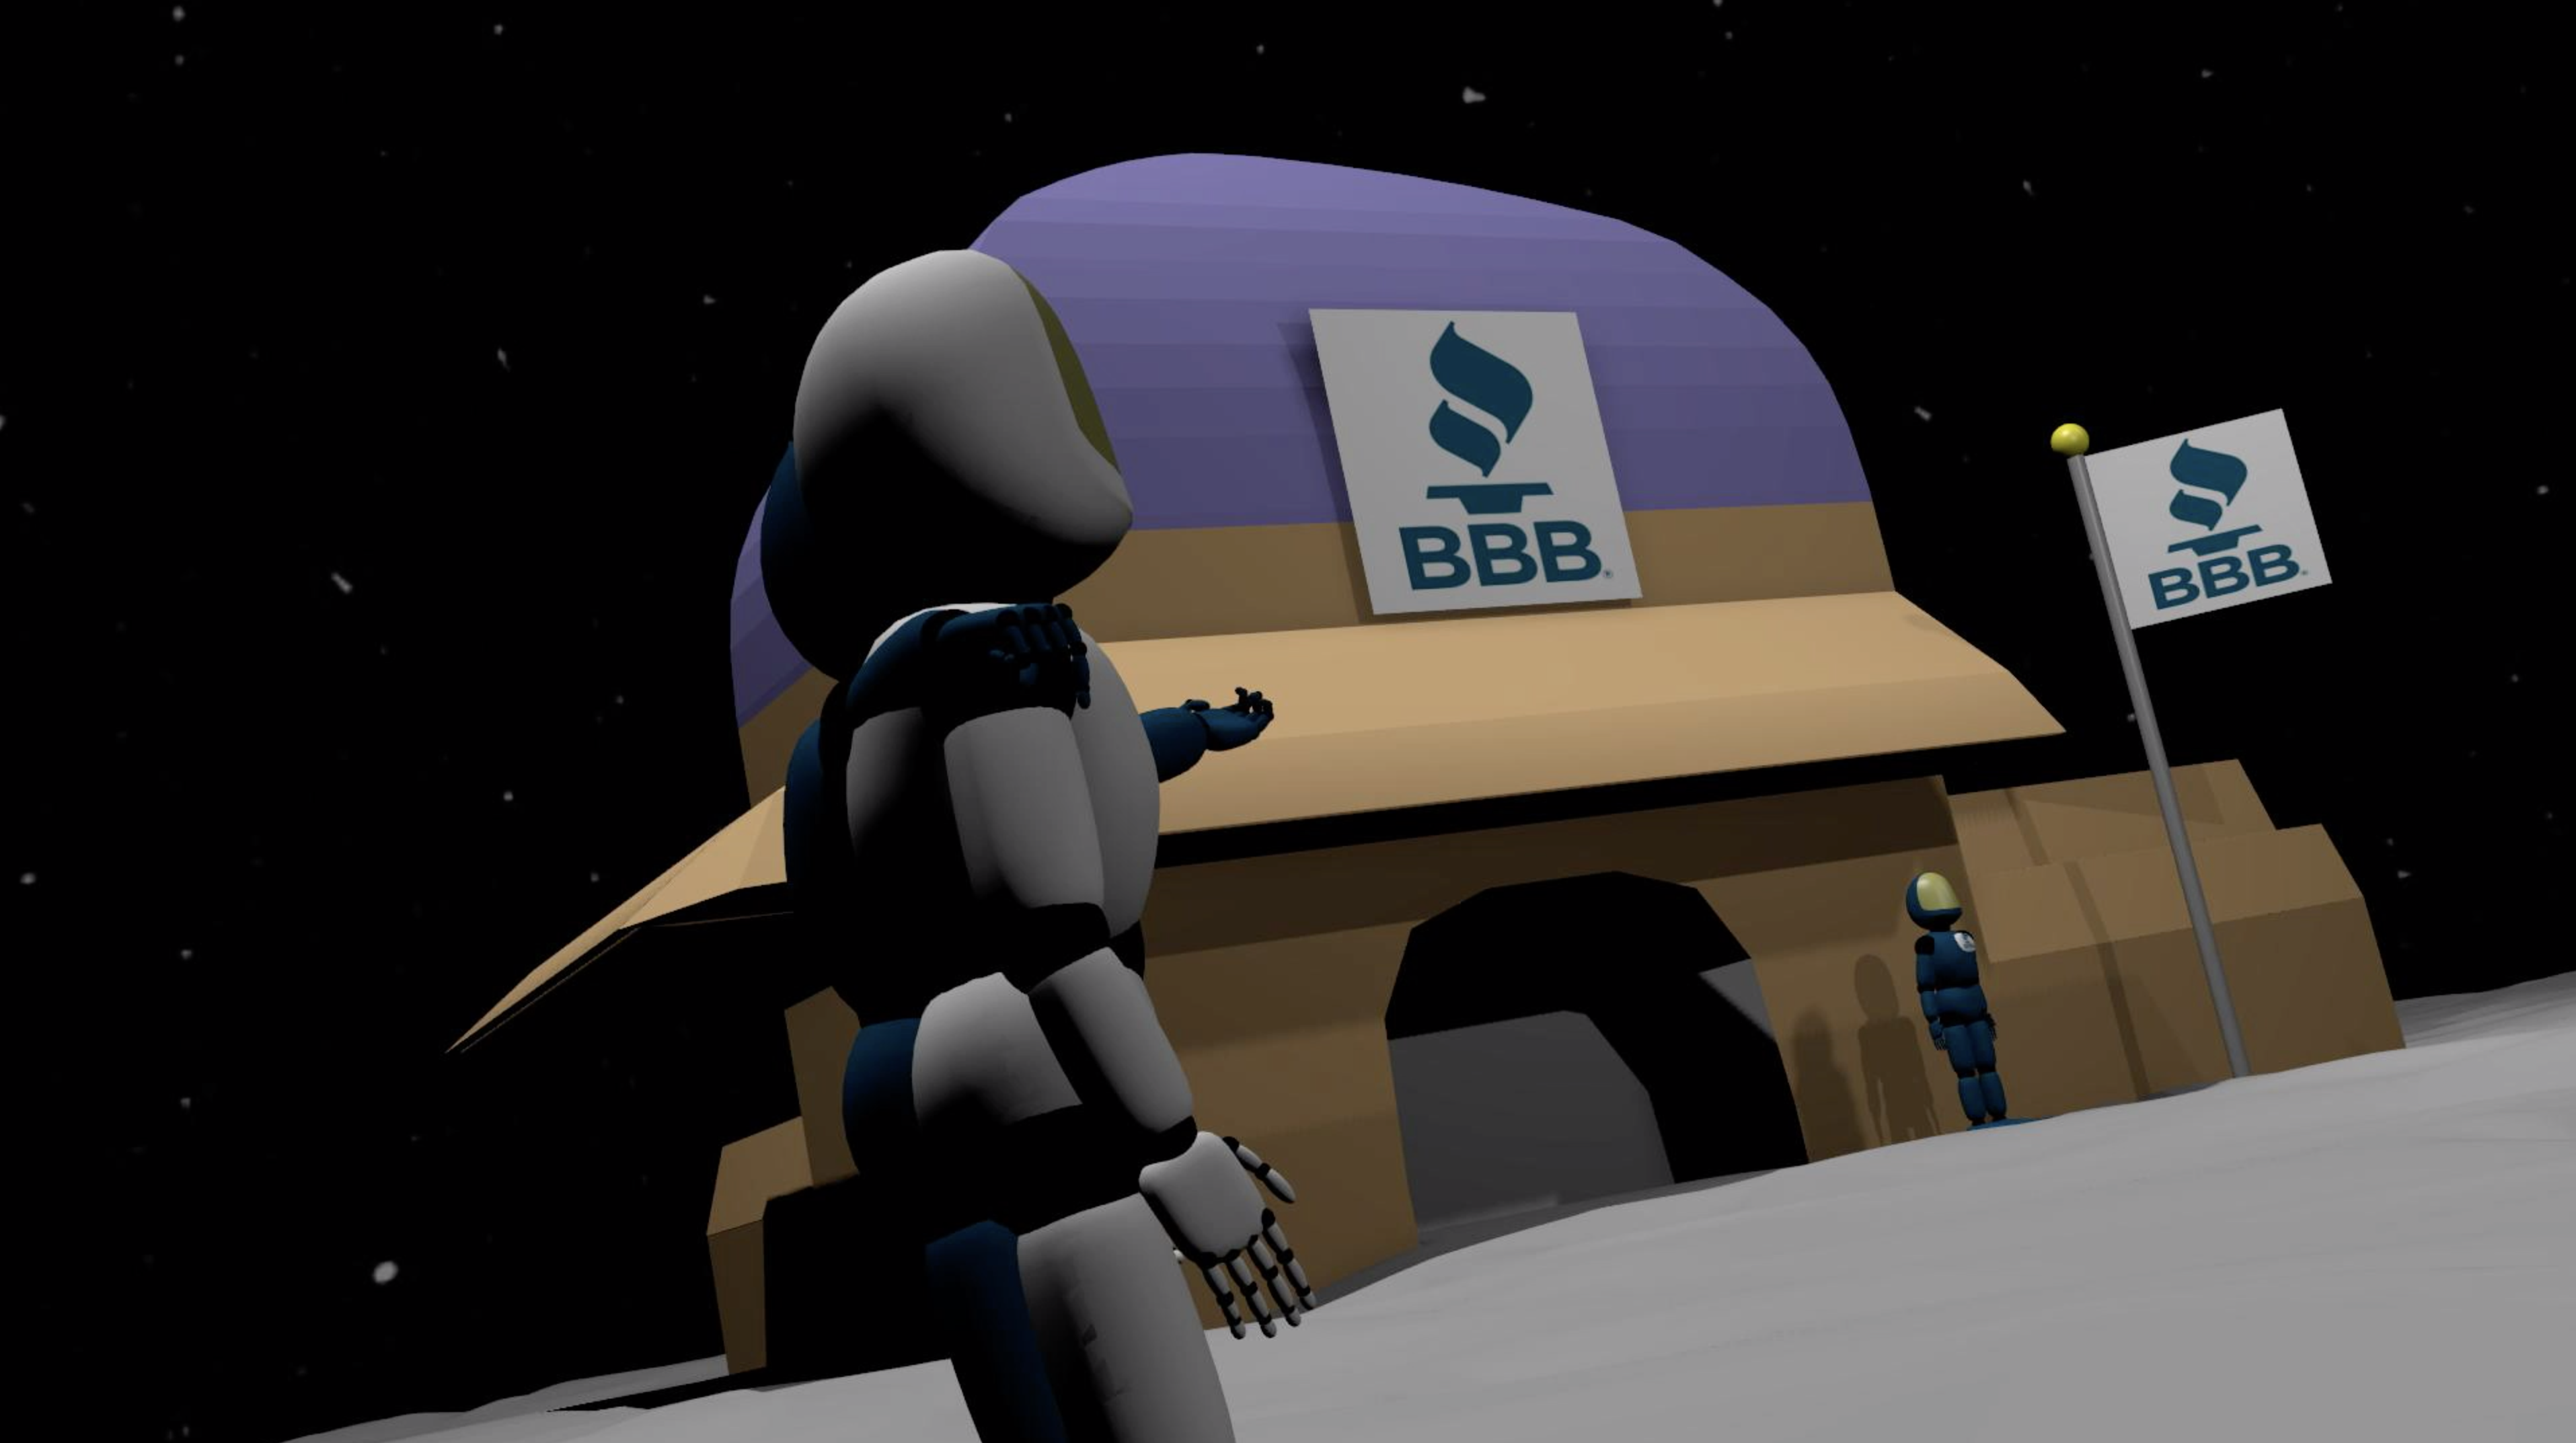 BBB in Space